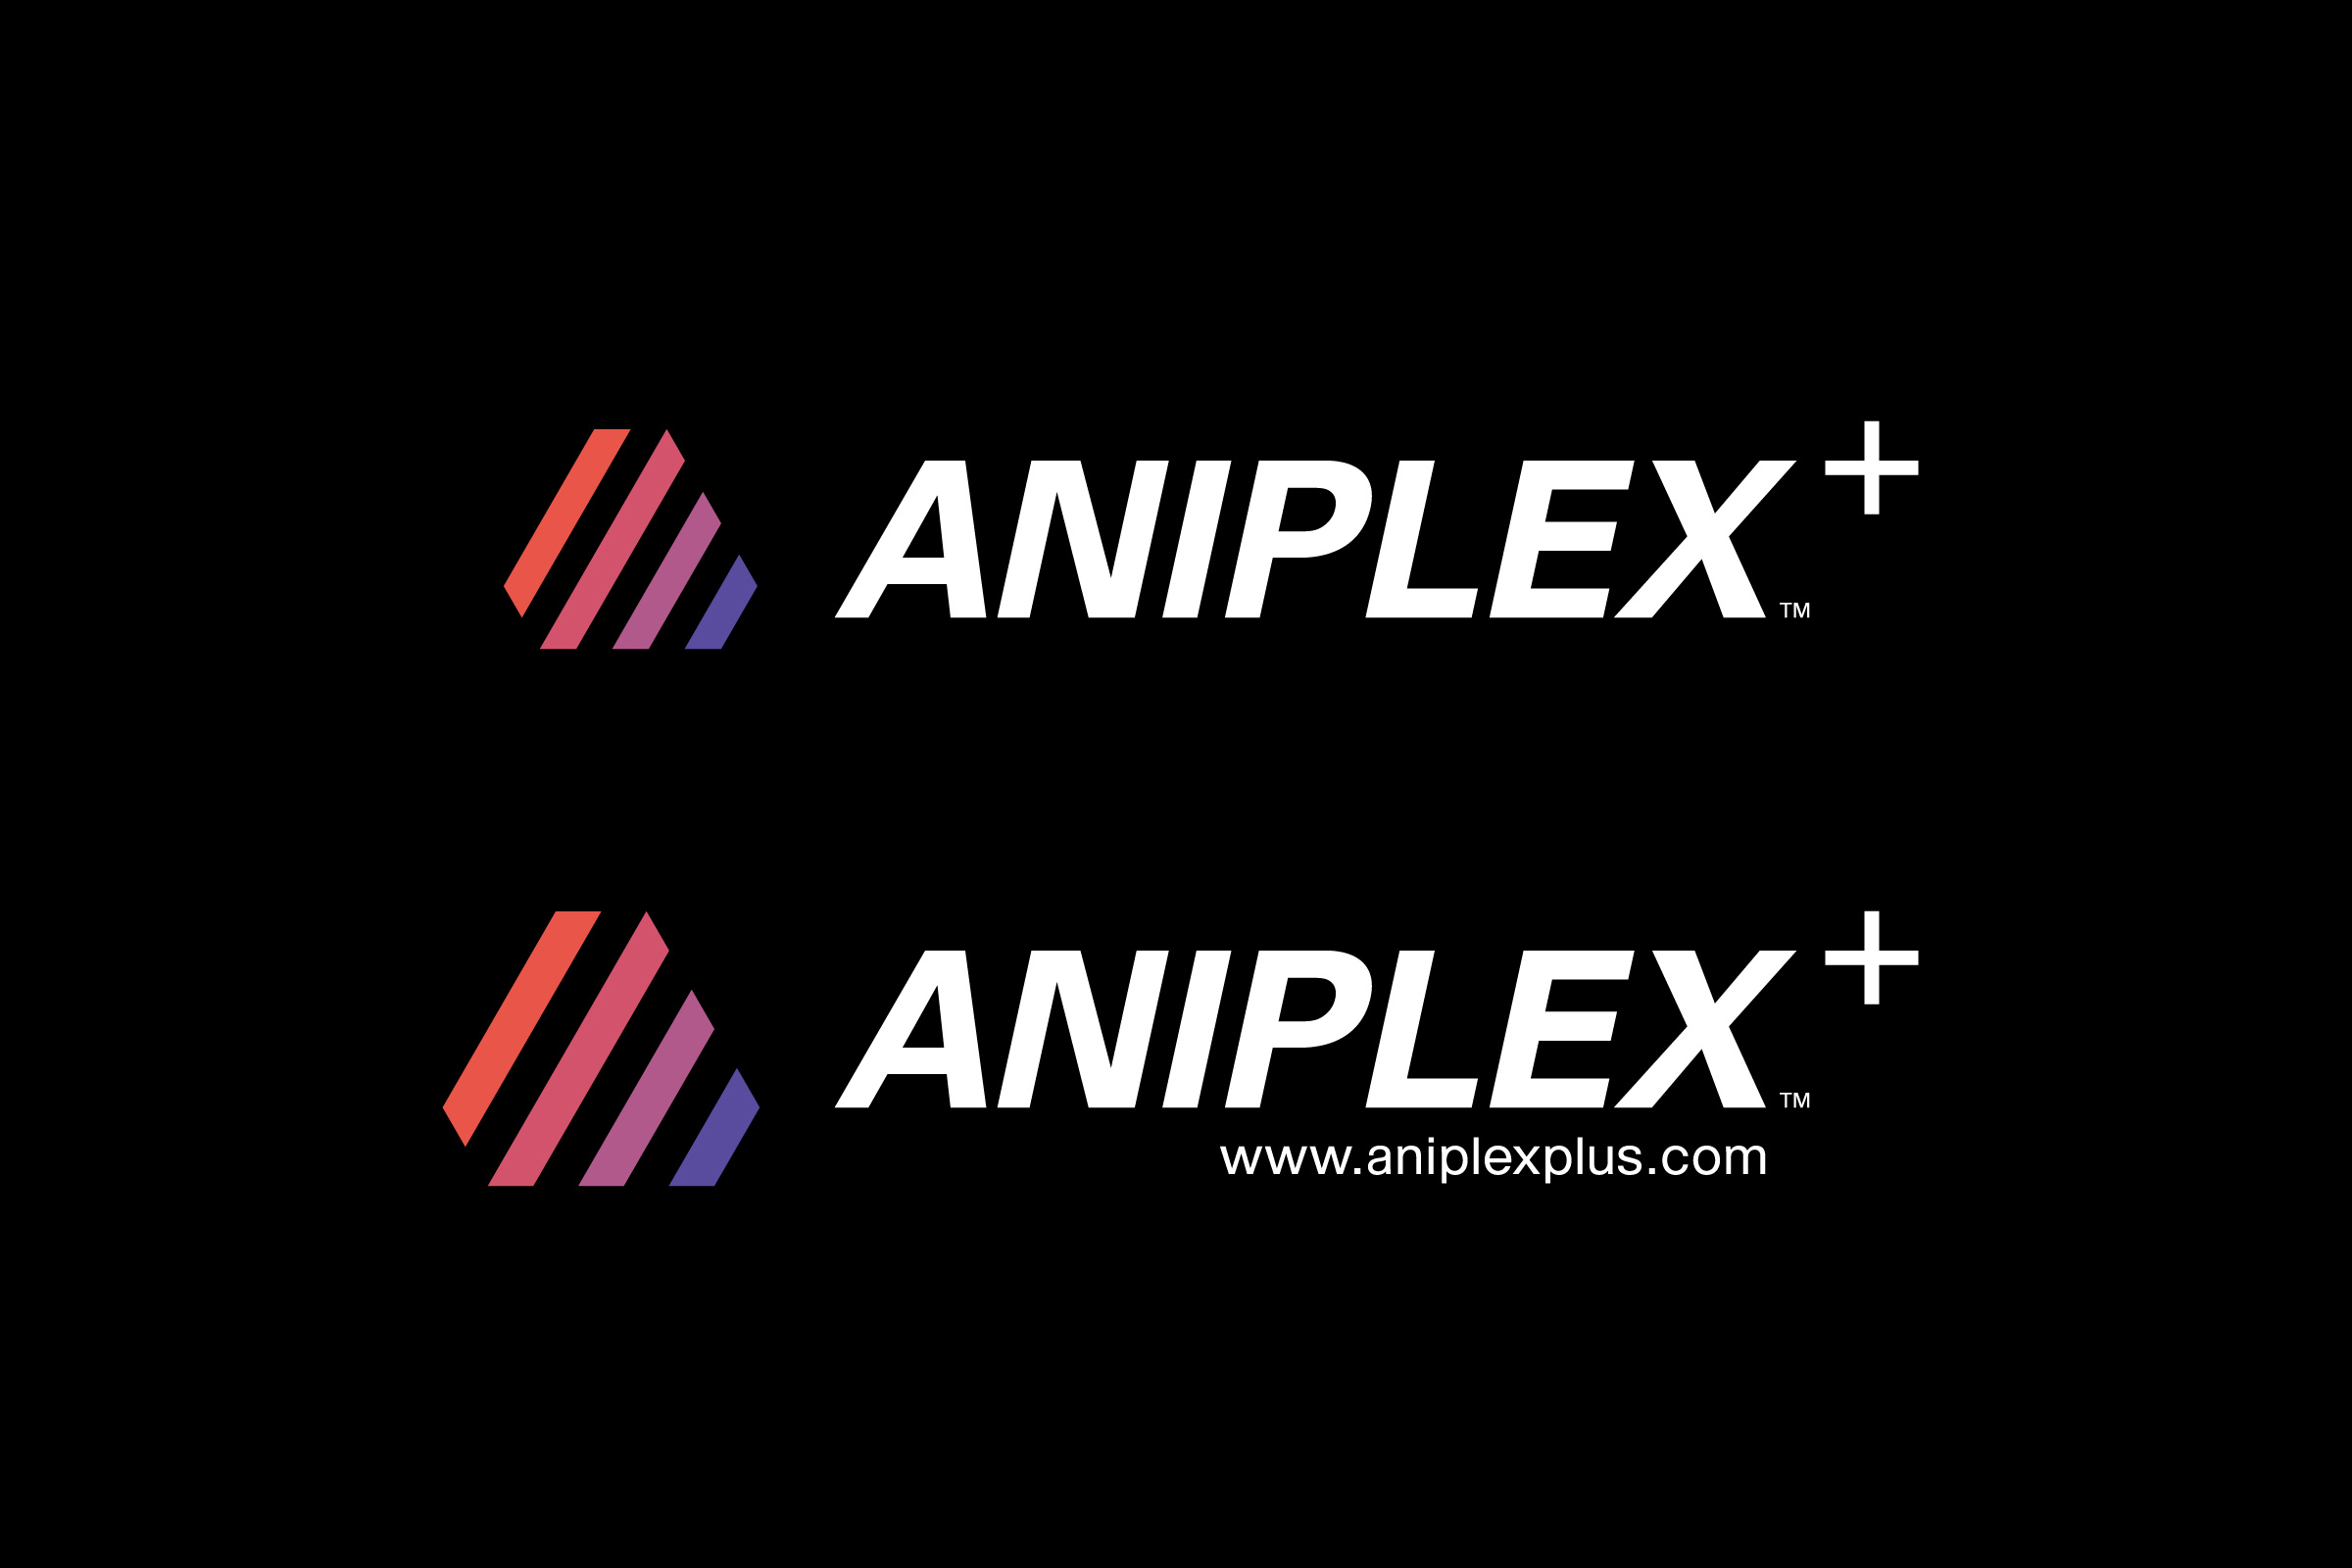 Aniplex Plus